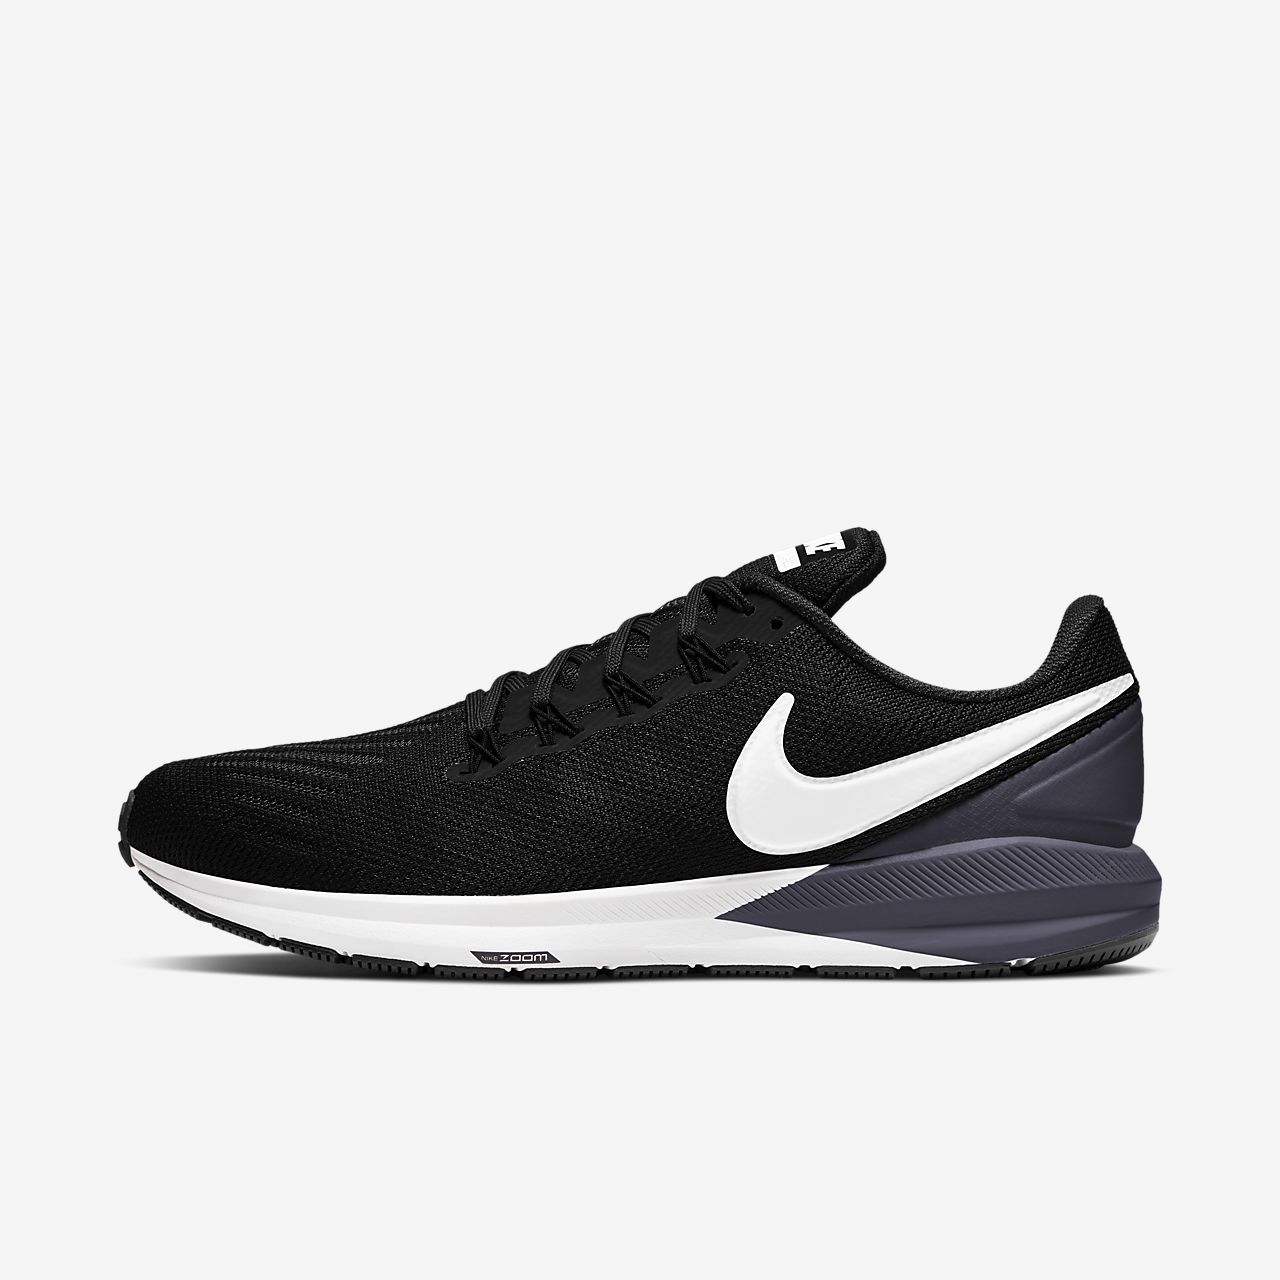 check out 59bb4 f9992 Nike Air Zoom Structure 22 Zapatillas de running - Hombre. Nike.com ES